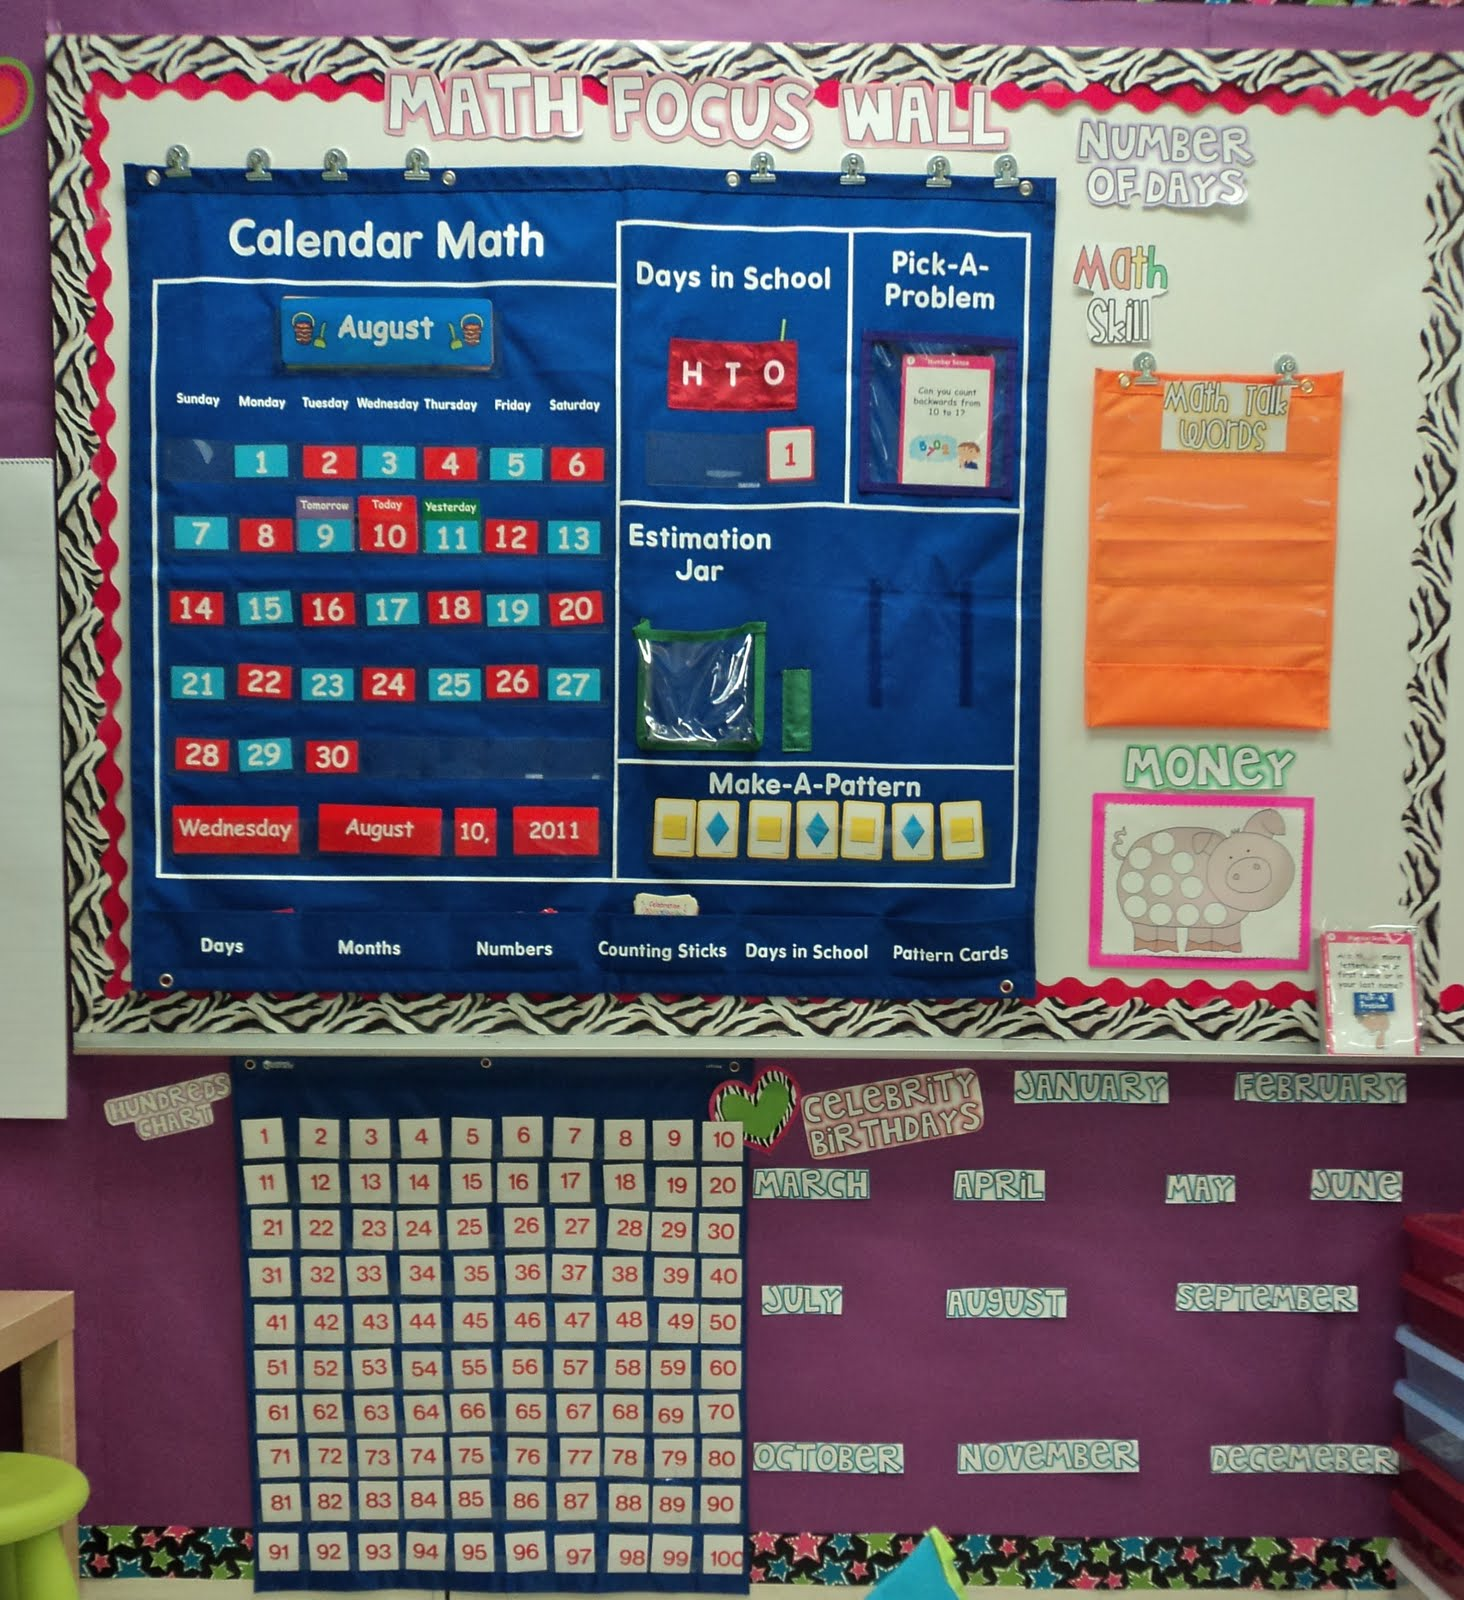 Math Focus Wall http://firstgradefresh.blogspot.com/2011/08/lets-give-them-something-to-talk-about.html